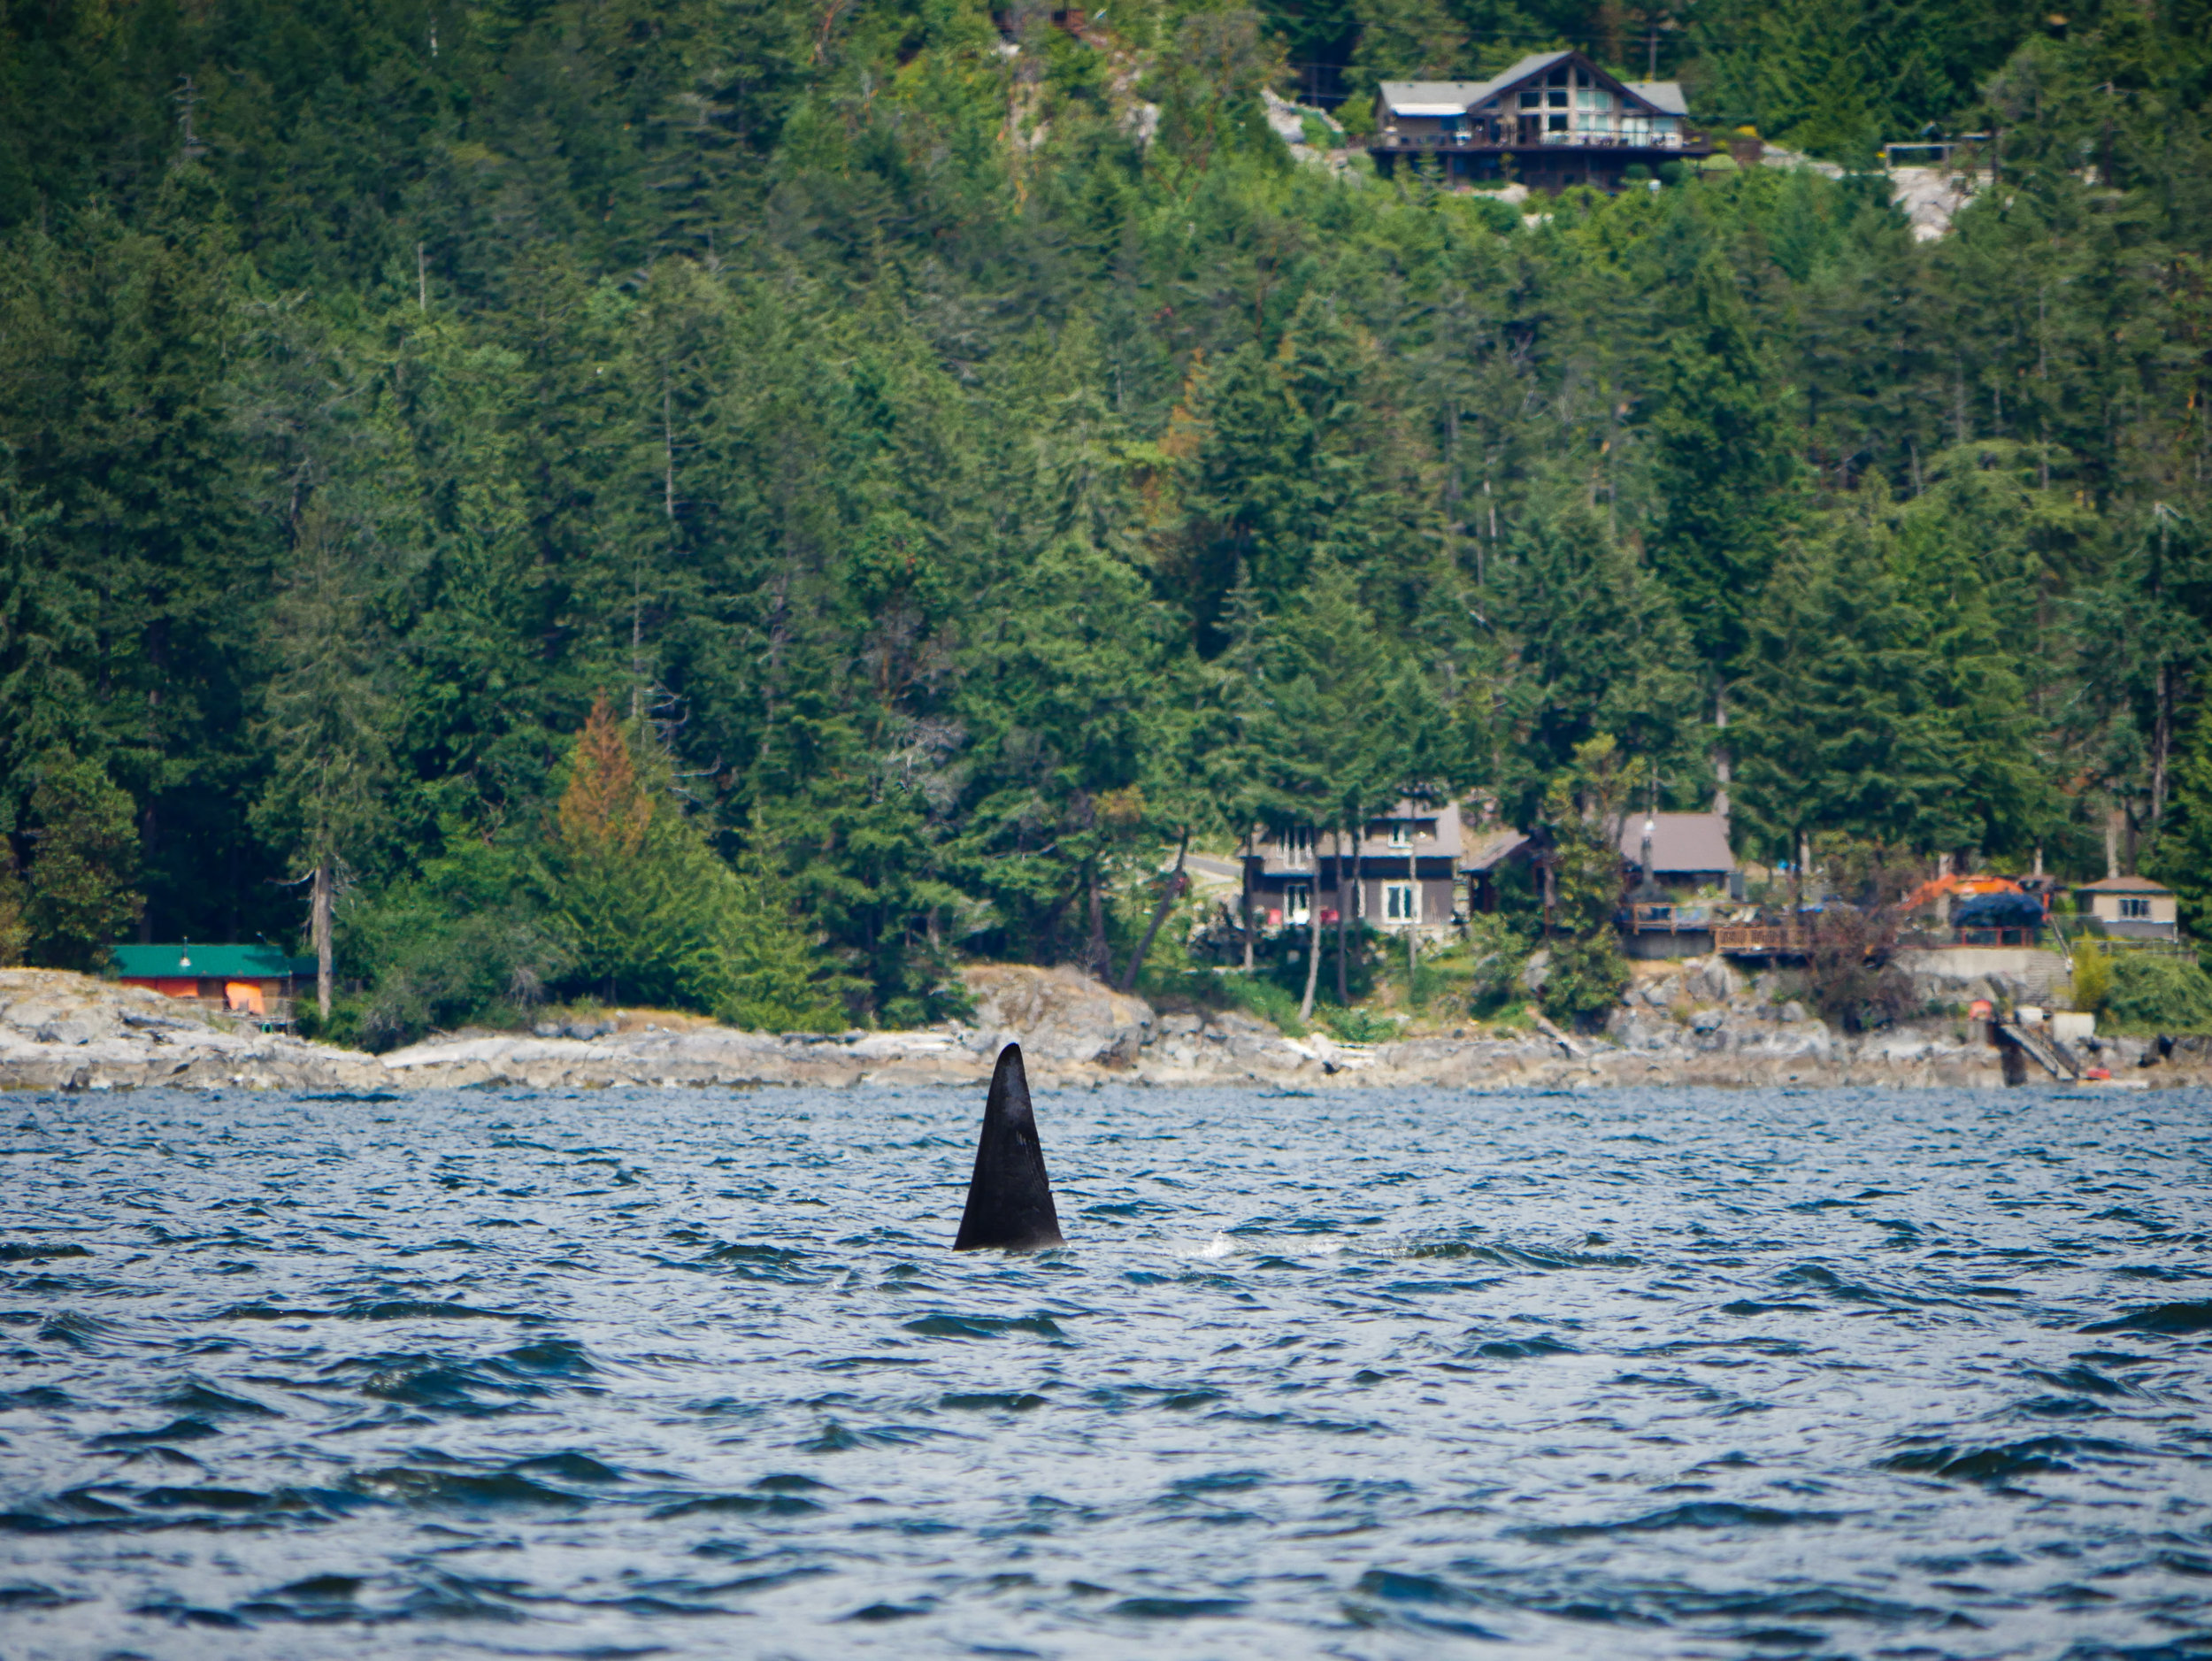 Transient Orca dorsal fin! Photo by Val Watson.